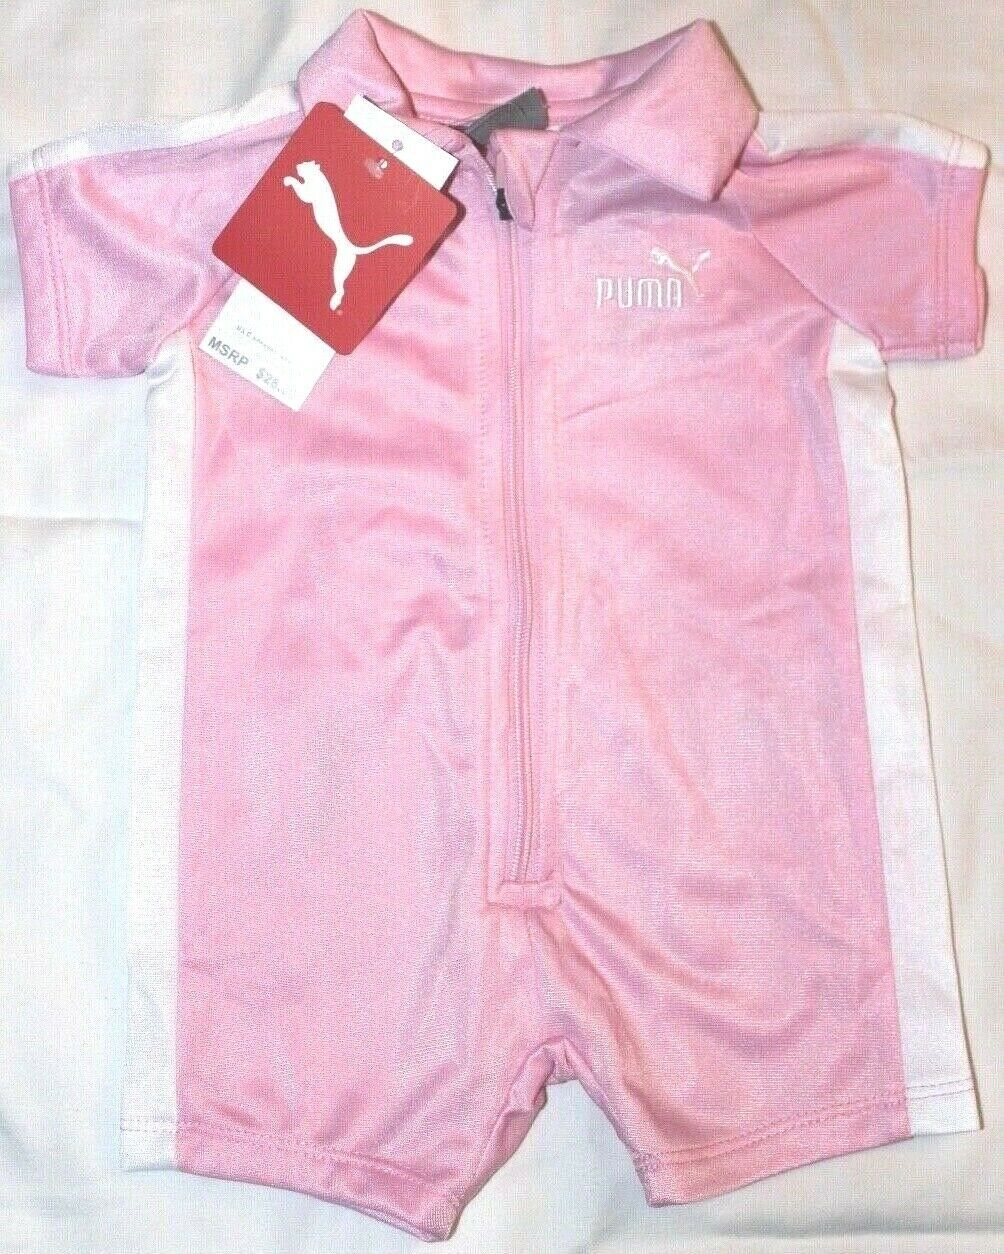 Baby Girls 0-3M or 3-6M PUMA Romper 1 pc Summer outfit Pink